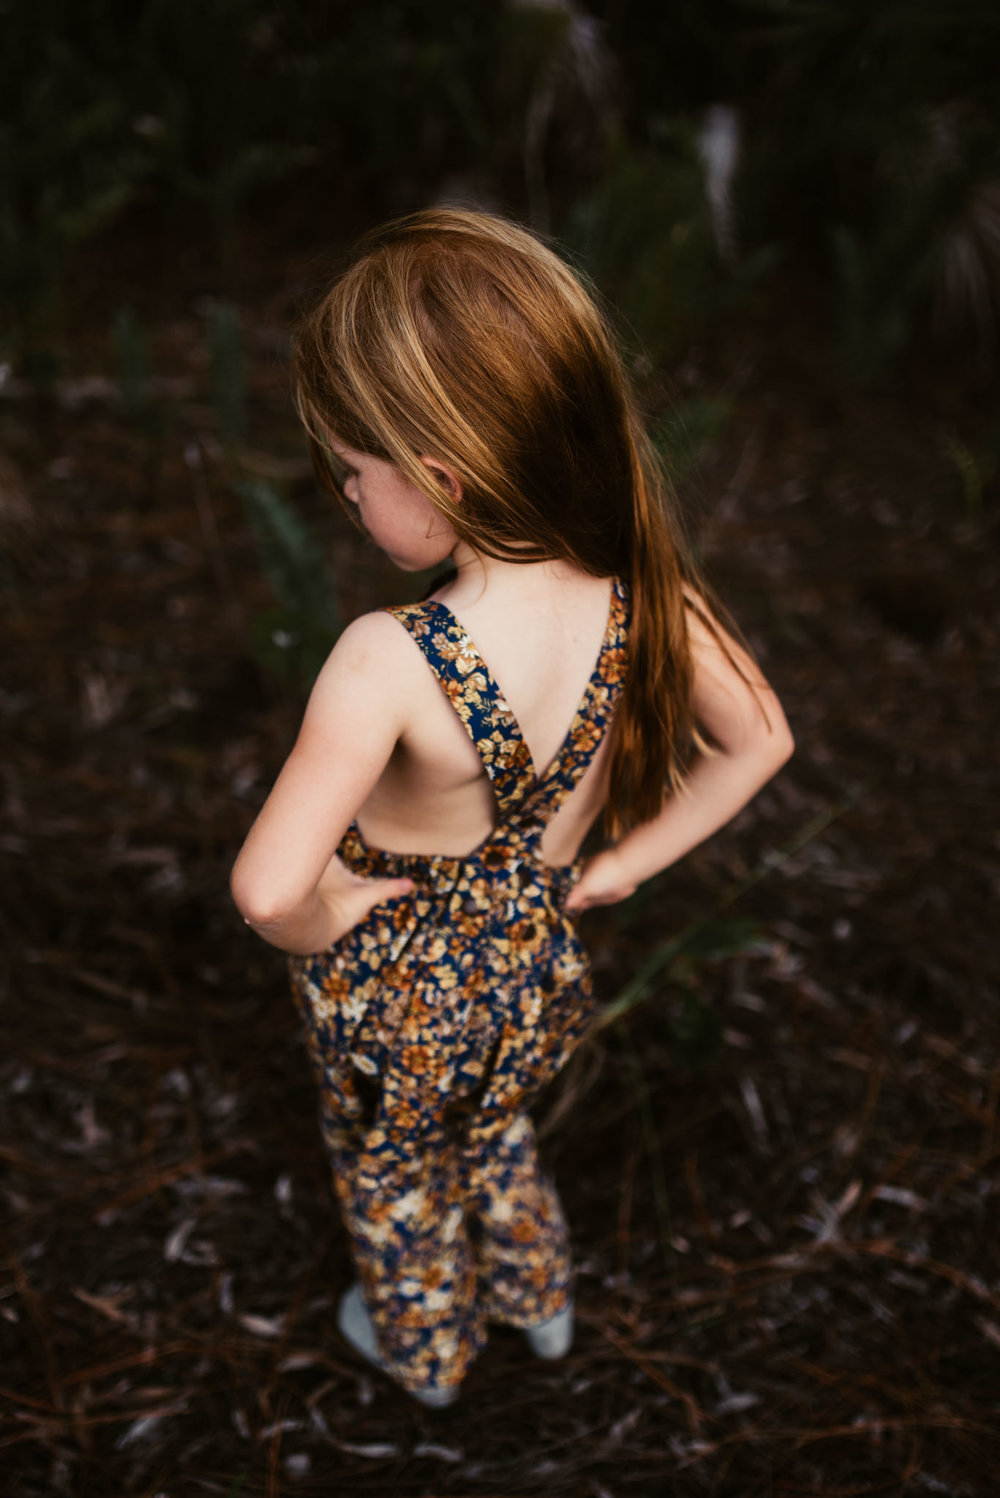 twyla jones photography - treasure coast florida - childrens adventure clothing commercial shoot--45.jpg